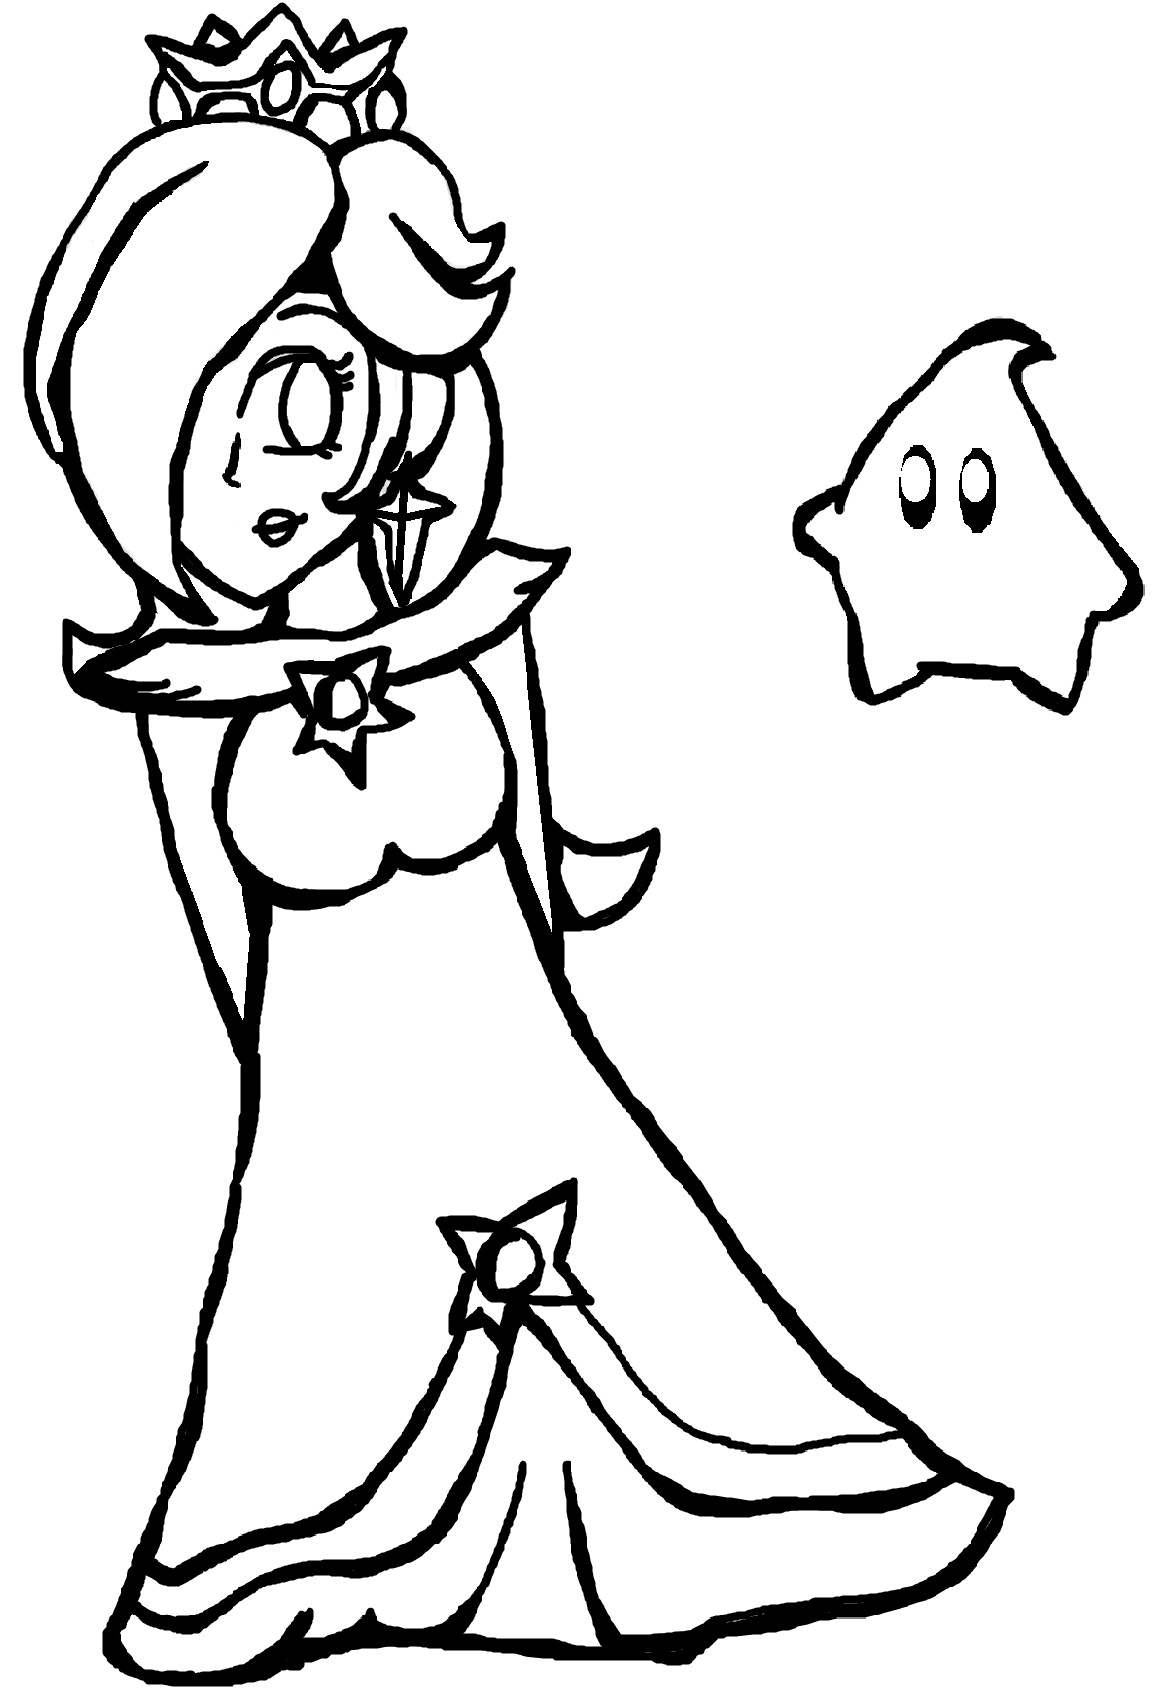 Rosalina And Luma Coloring Pages | Coloring Pages